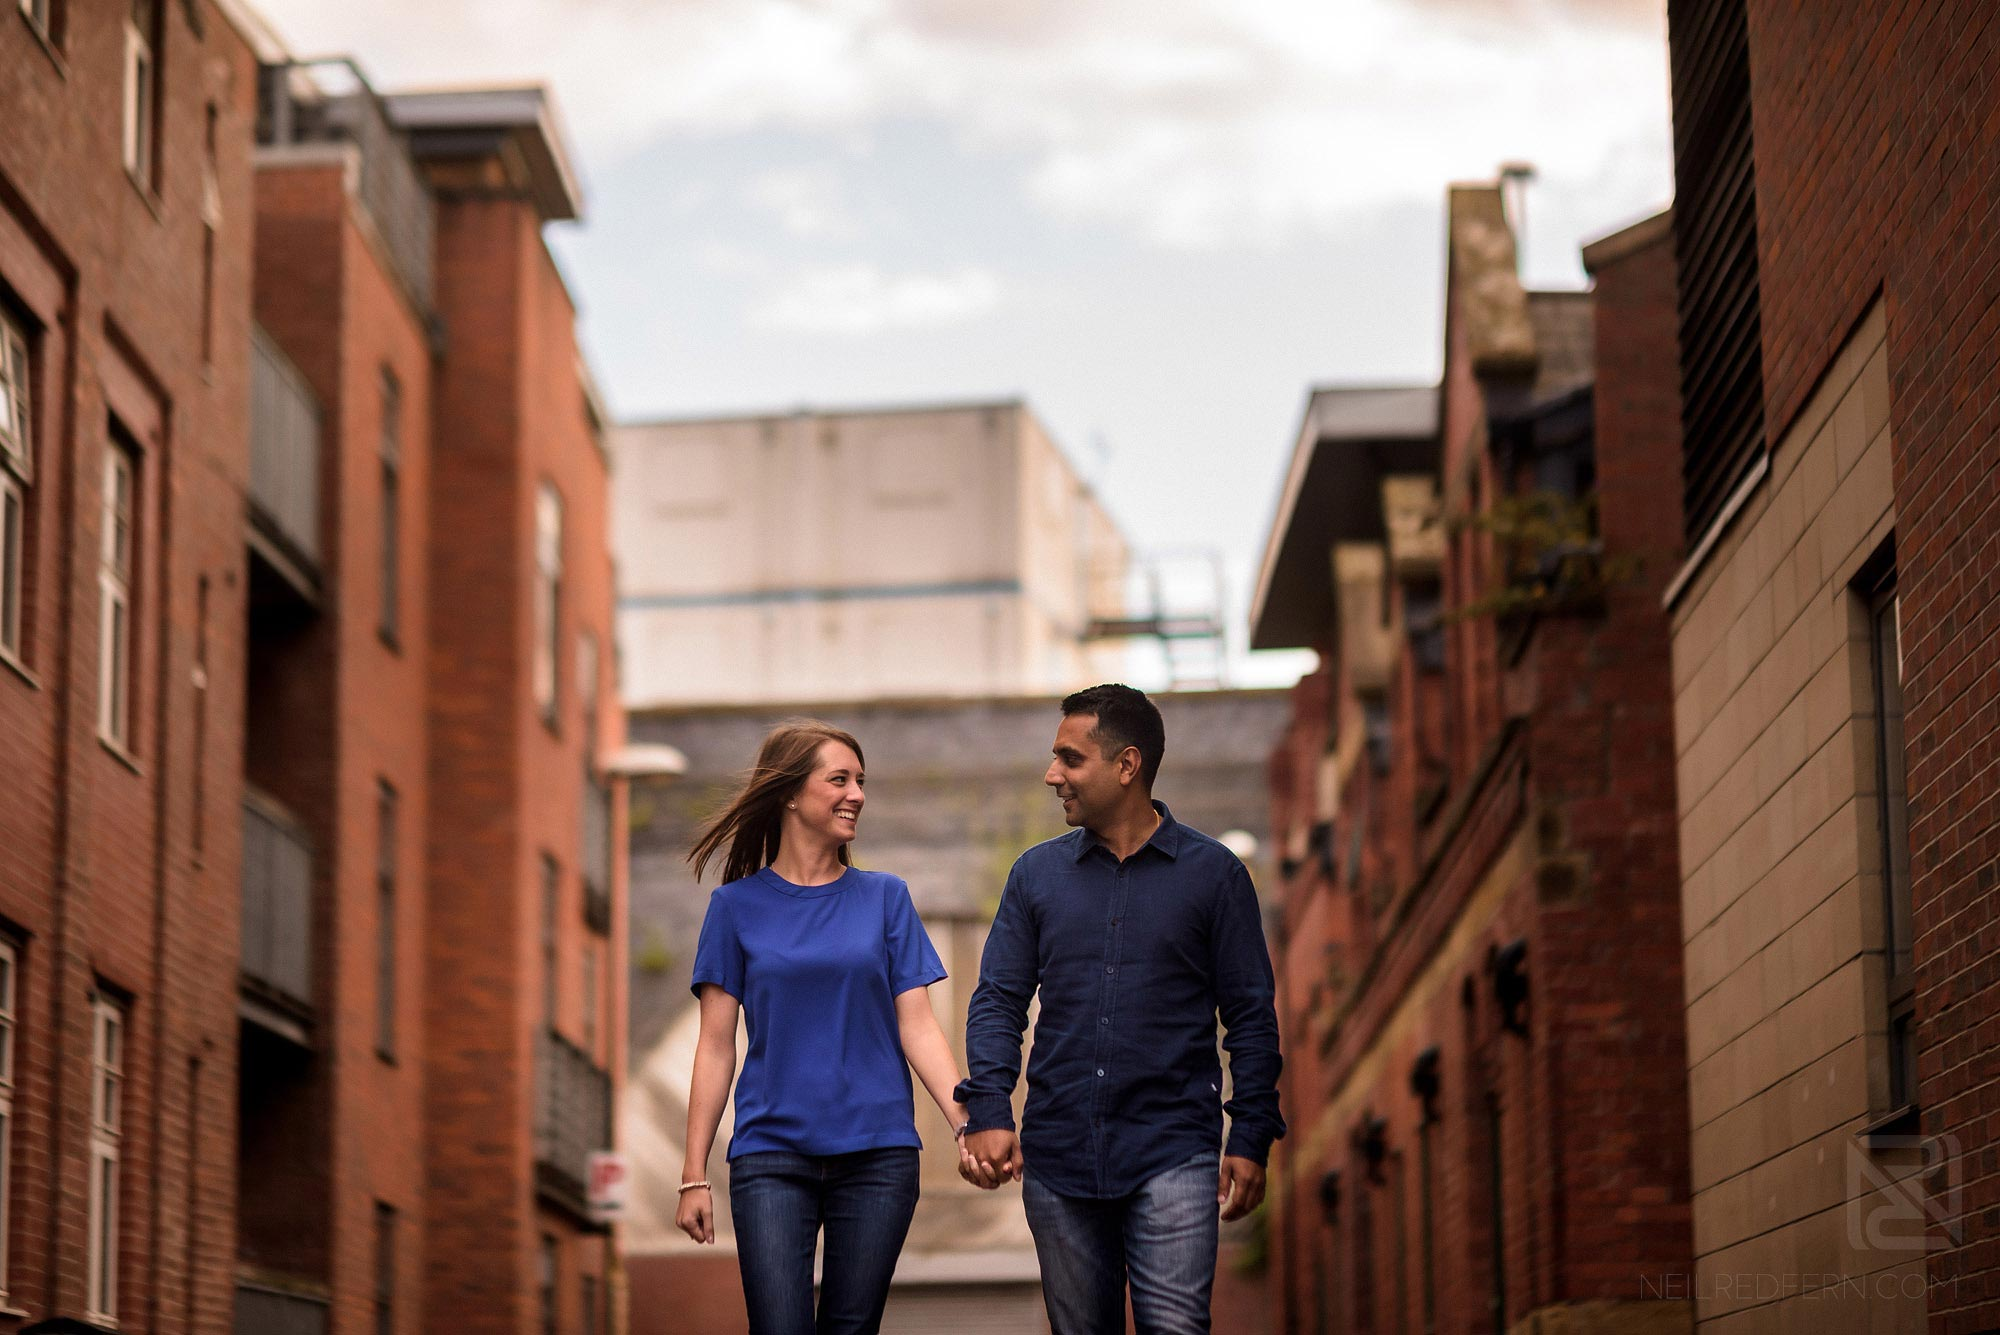 engaged couple walking down street in Manchester